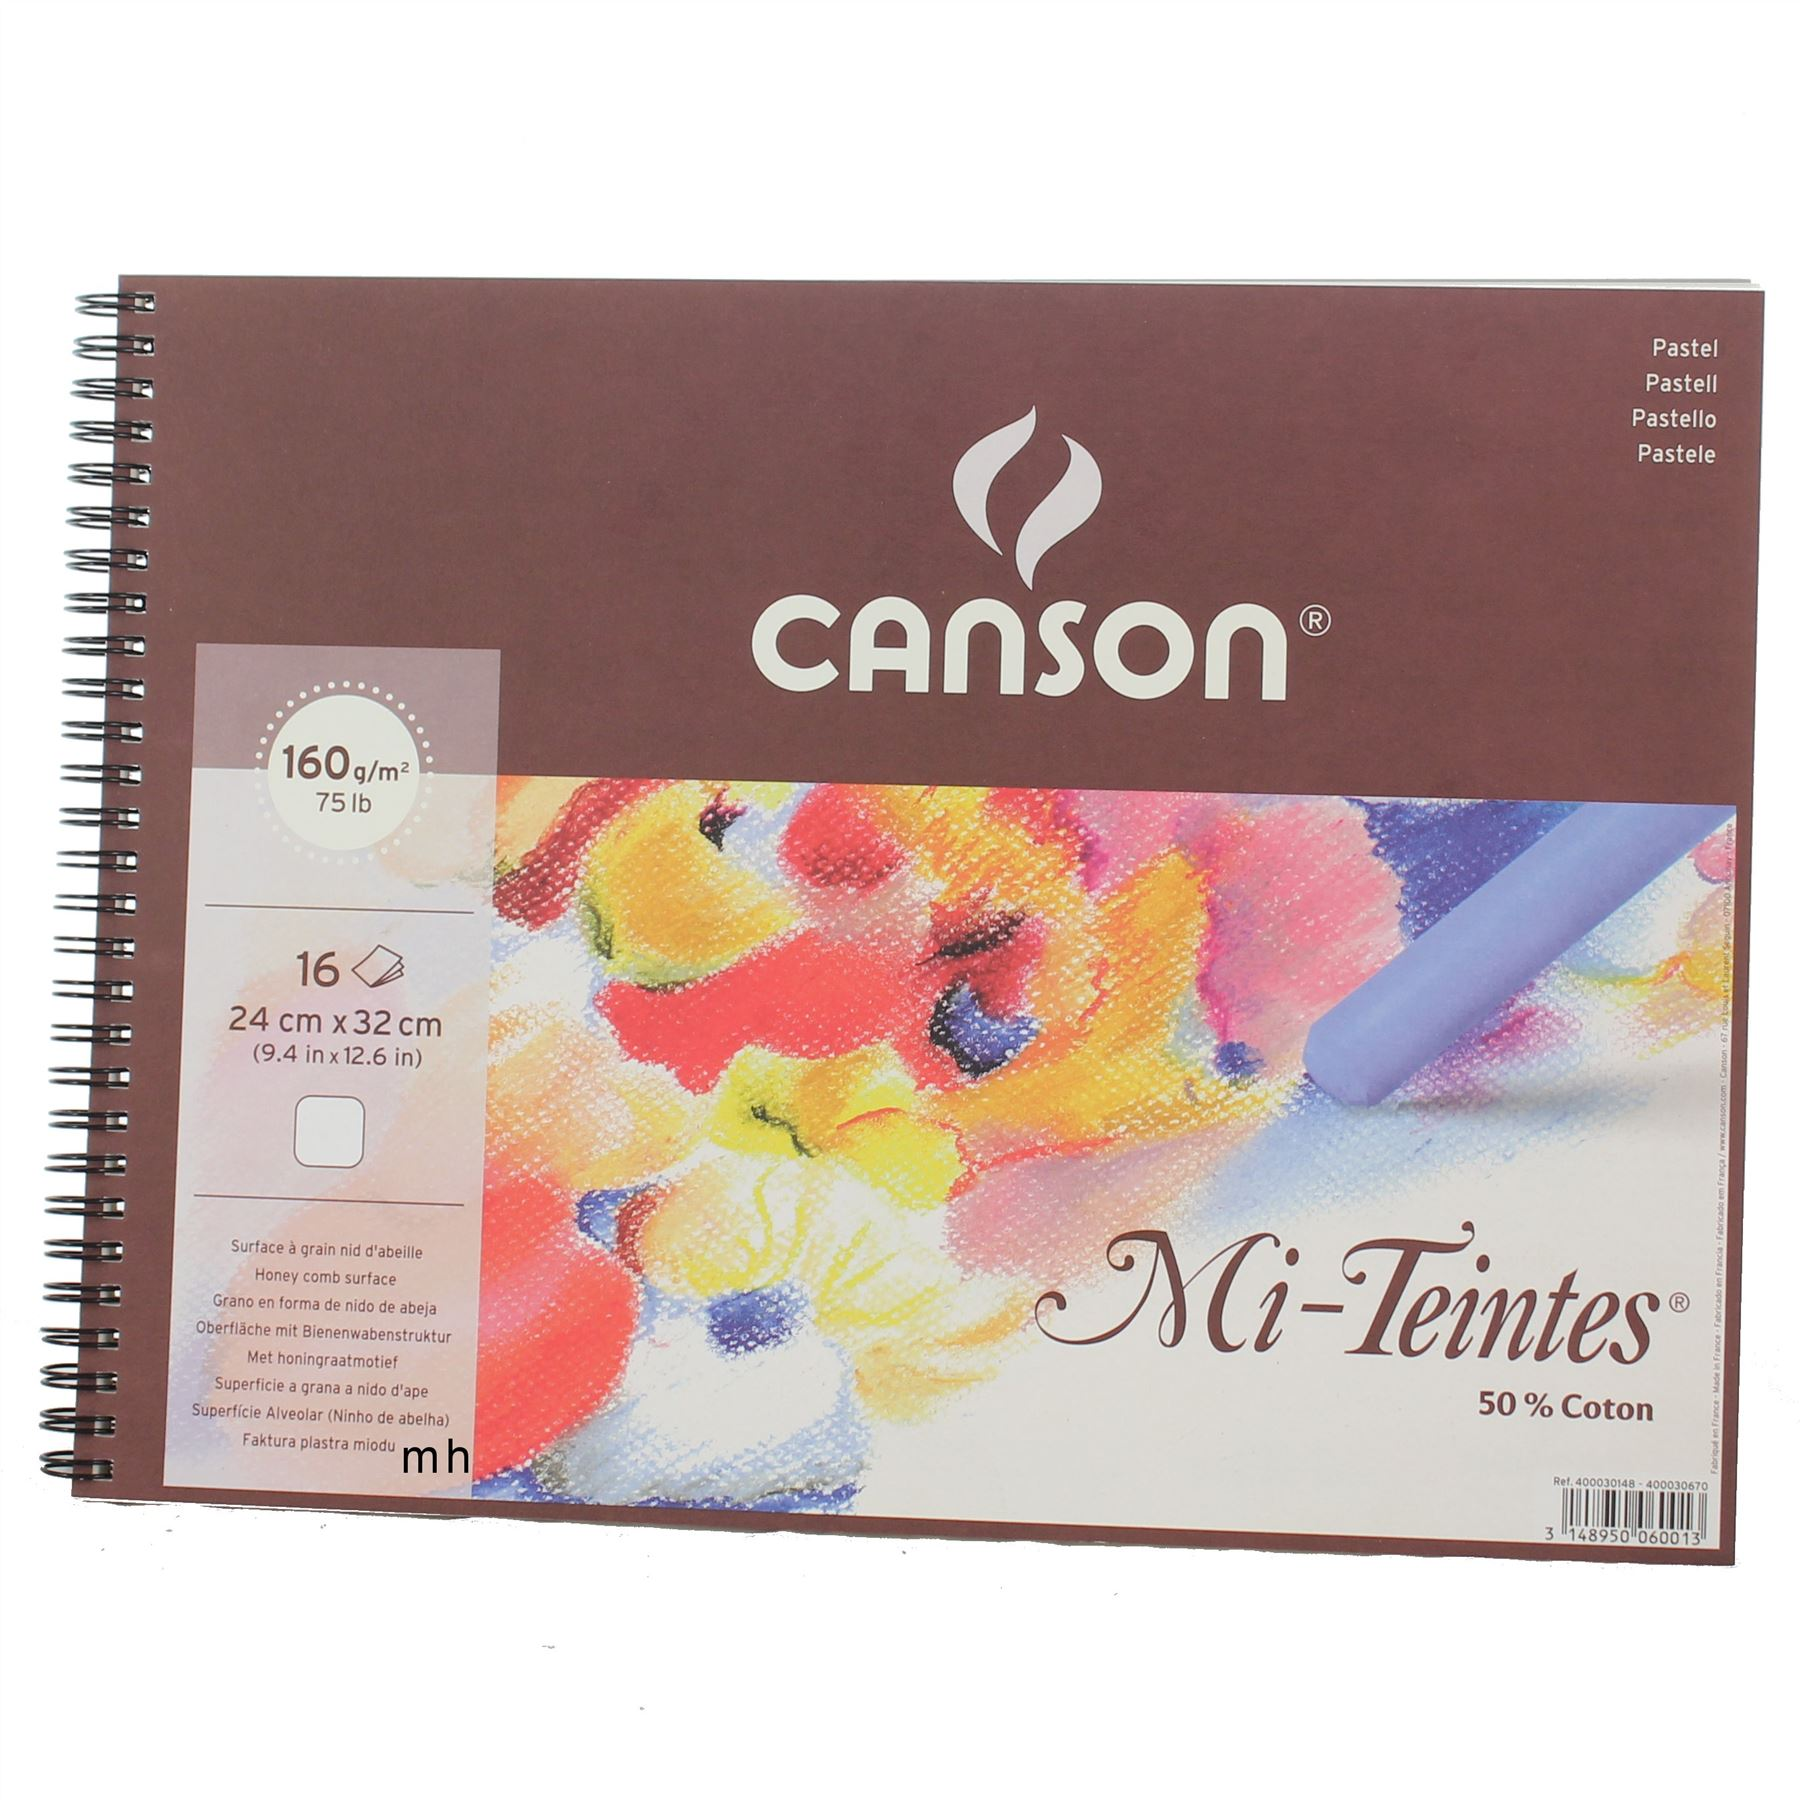 Canson-Mi-Teintes-Artists-Pastel-Paper-160gsm-Pads-Grey-Eart-White-Black-Tone